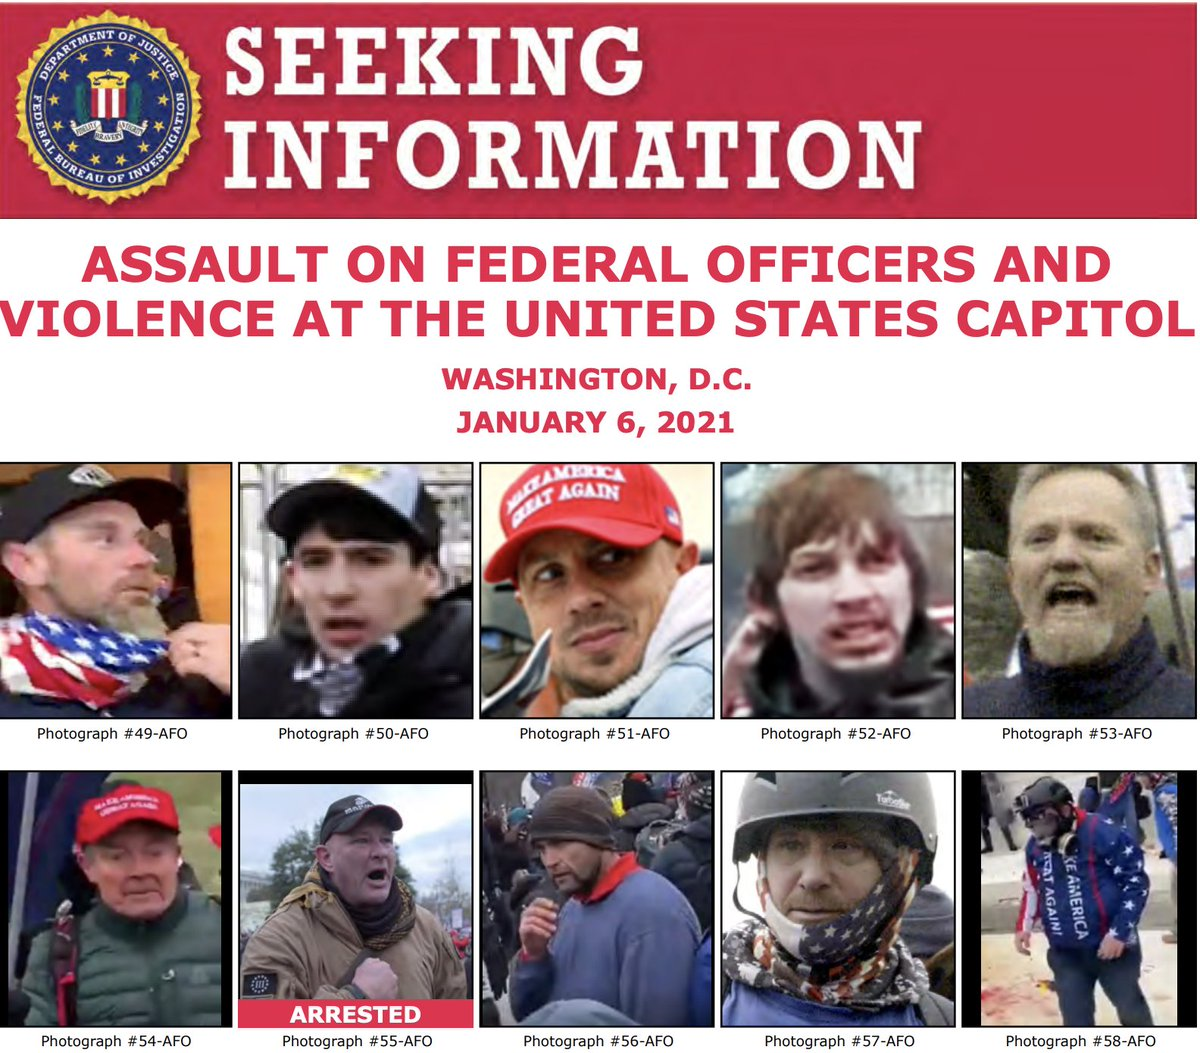 It's not too *crazy* to start asking which one in the FBI list of wanted domestic #MAGATerrorists who attacked the US Capitol on January 6th, will be the next Republican member of Congress. Maybe the GOP will use  those lists to recruit candidates. #MorningJoe #RadicalRepublicans